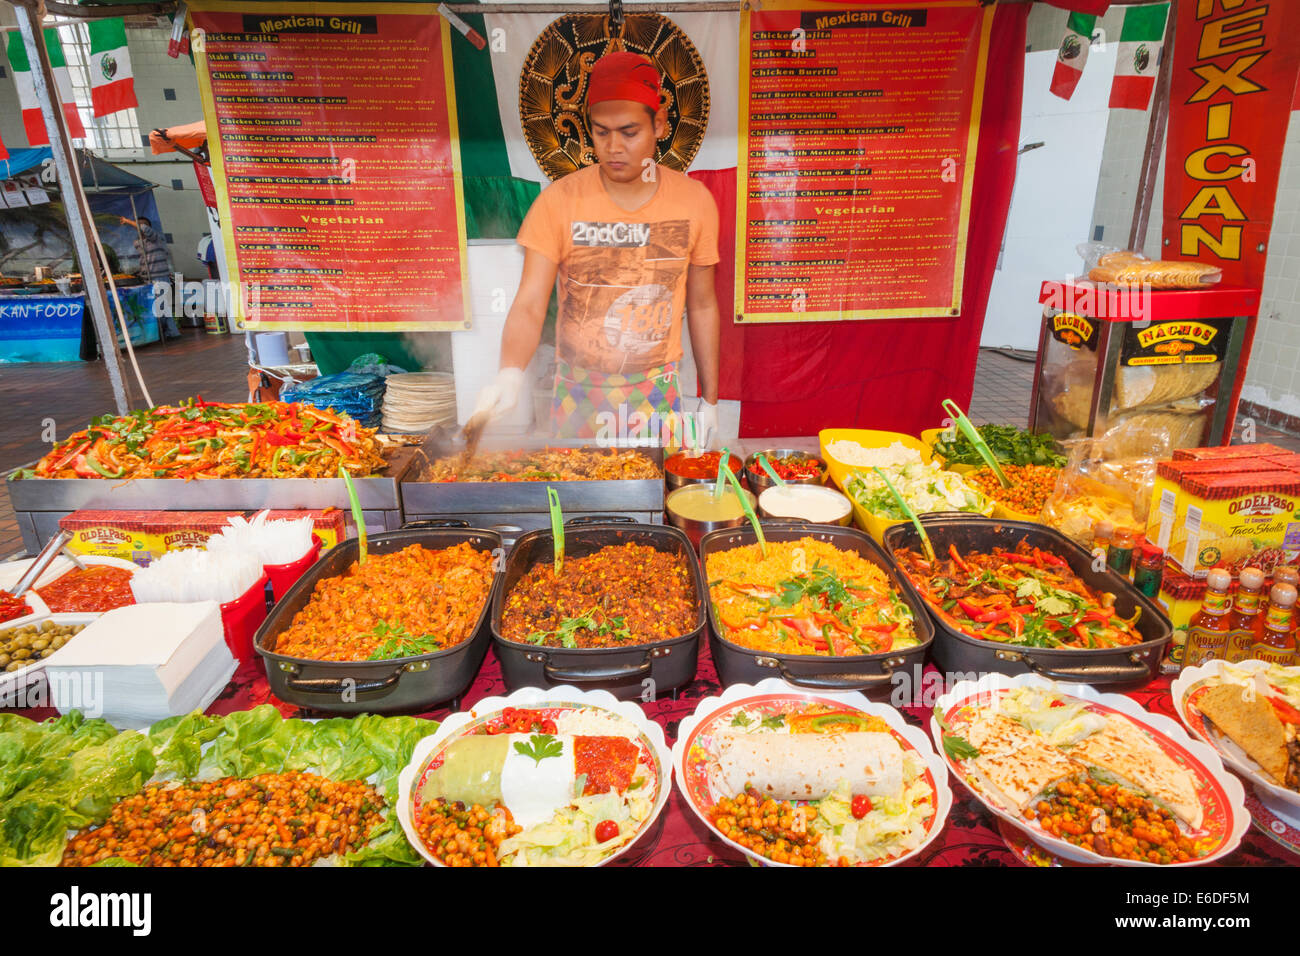 Mexican Food In London England